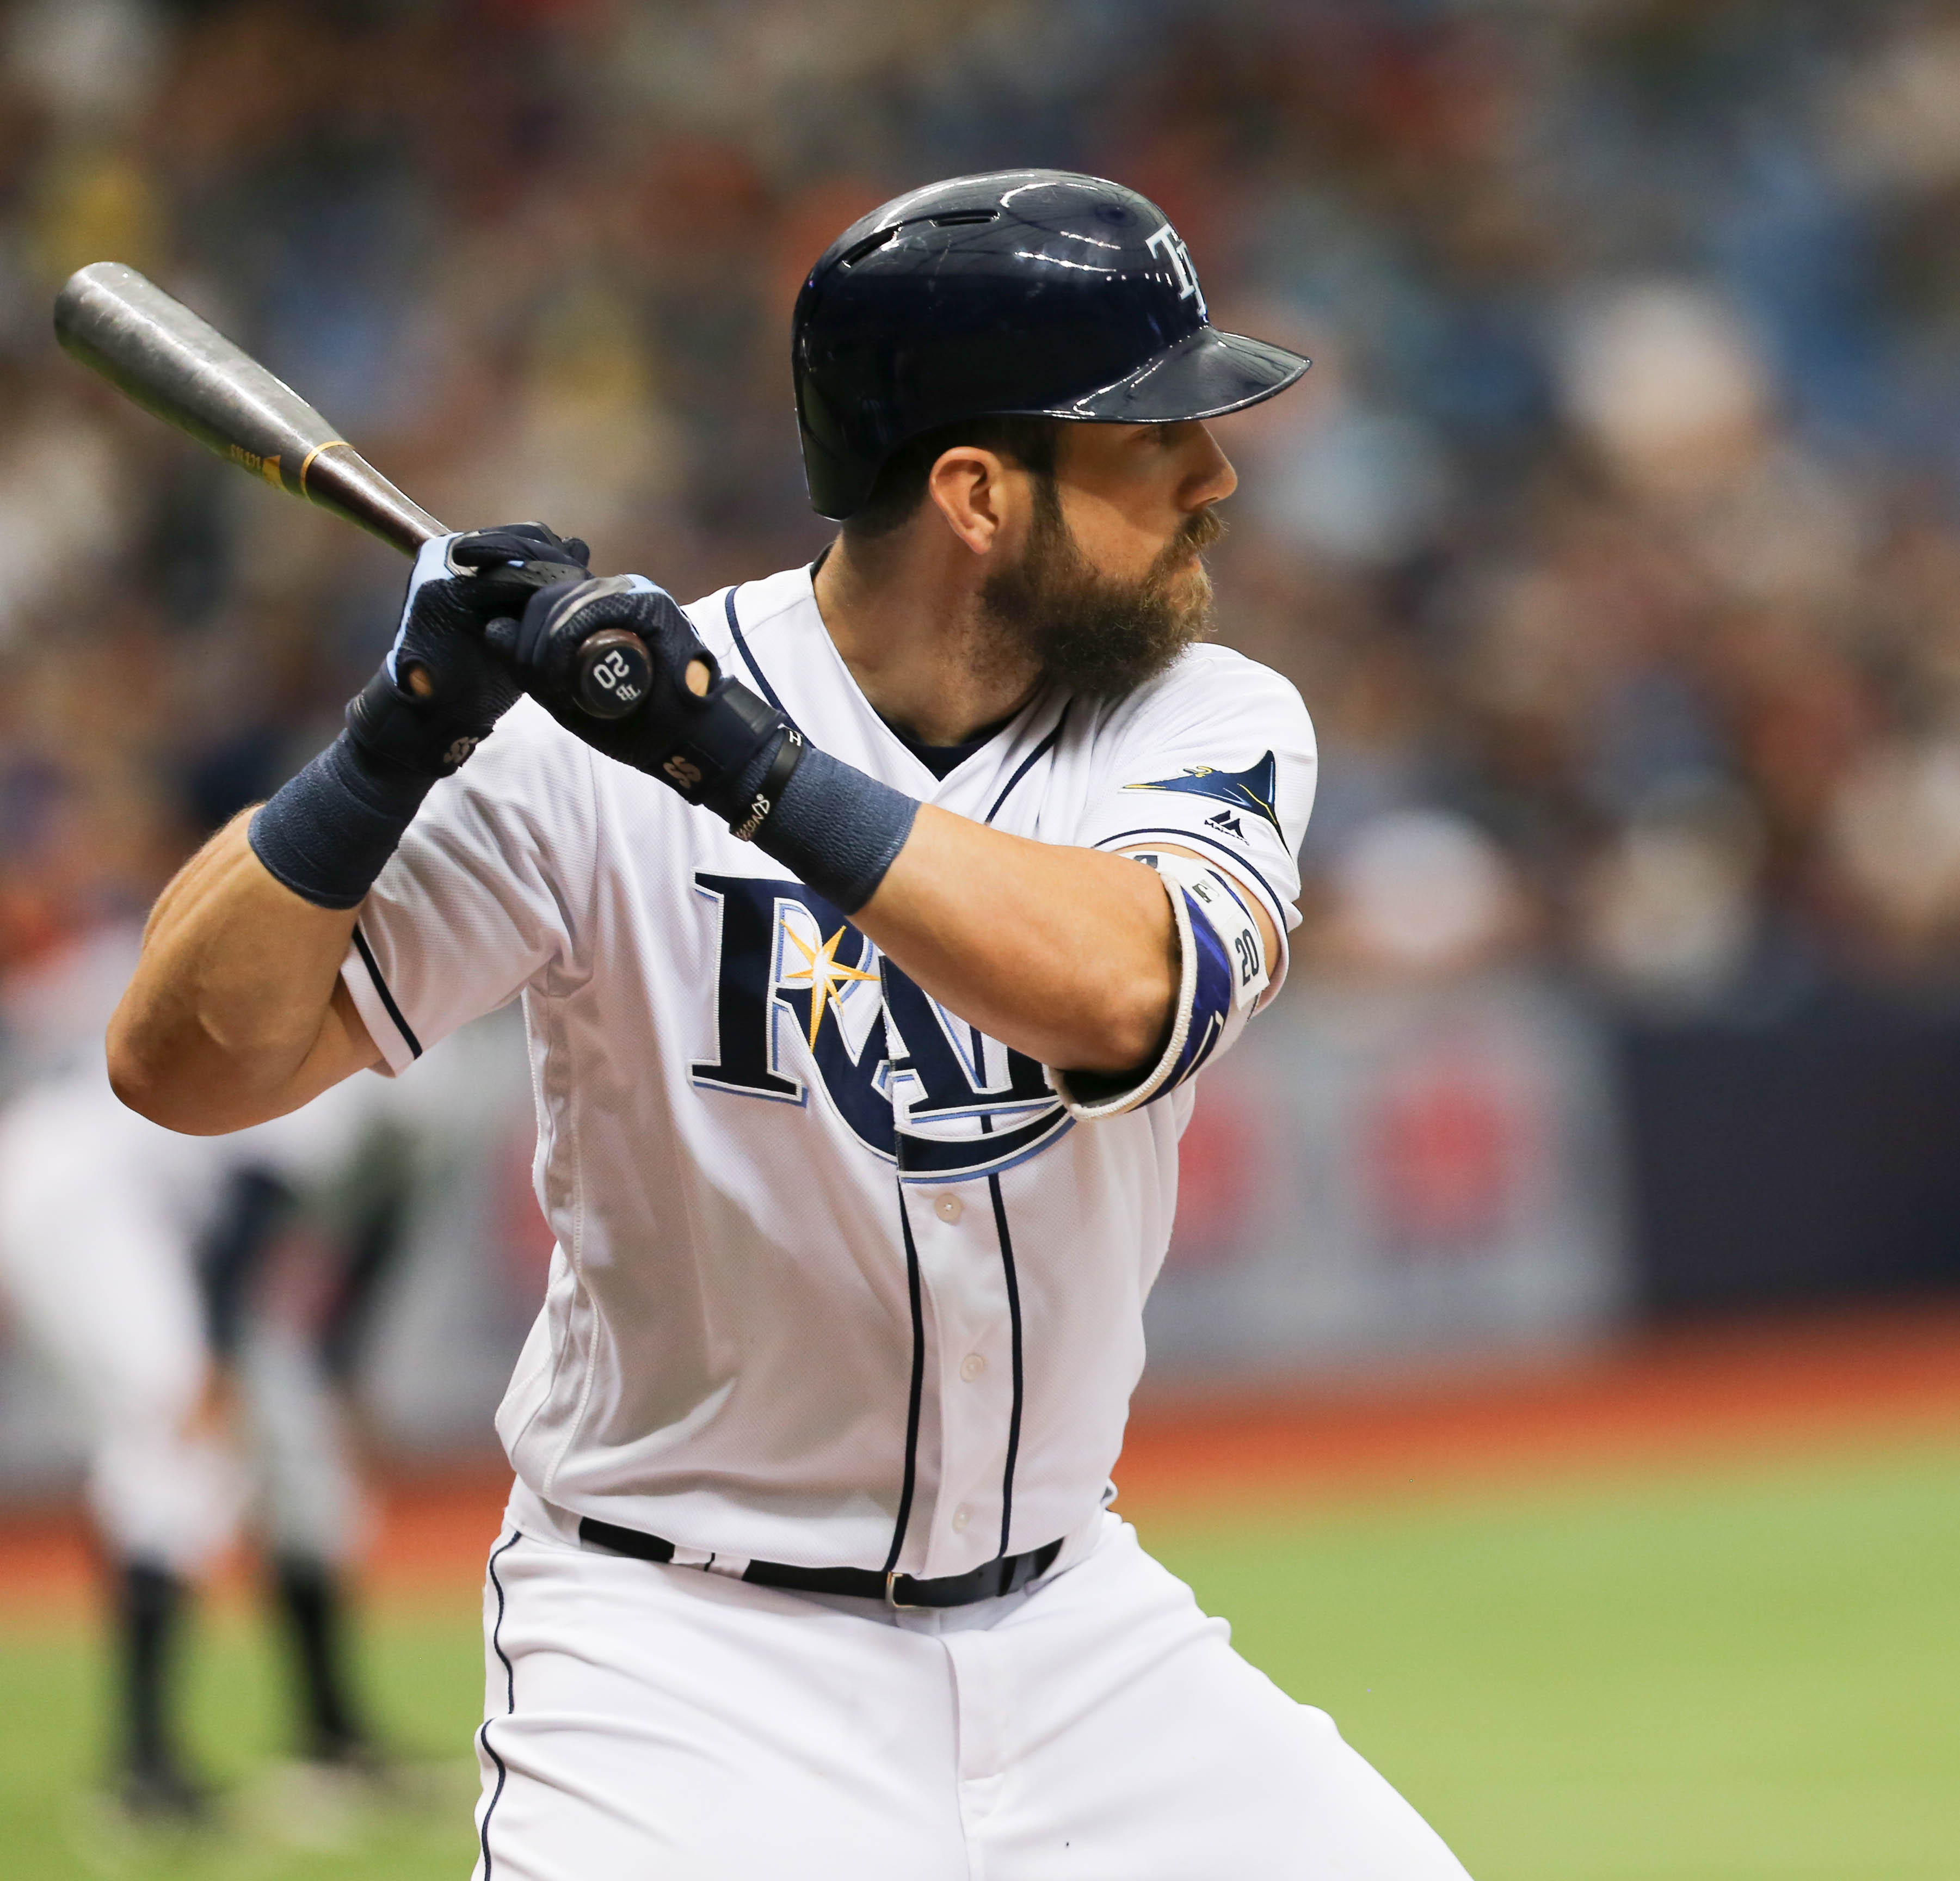 Souza knocked in the tying run in the ninth./STEVEN MUNCIE